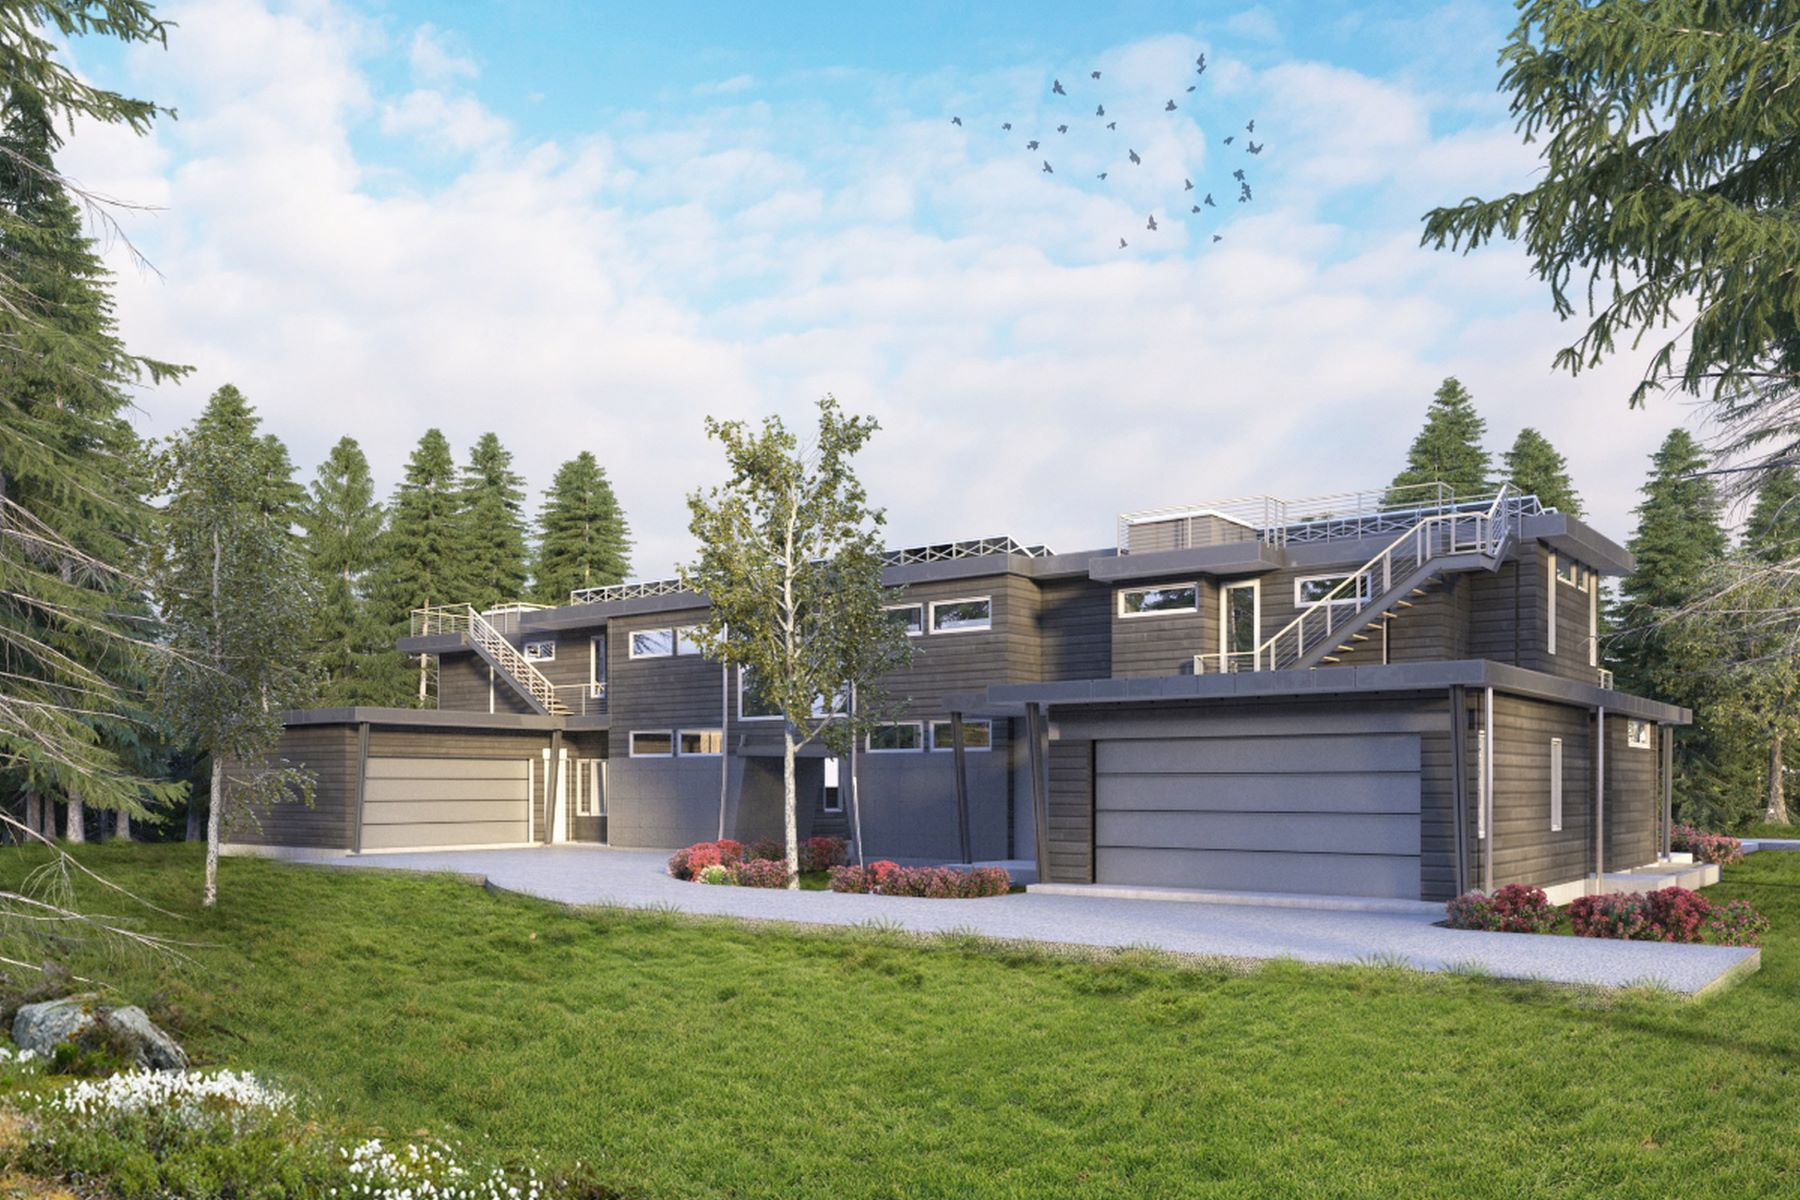 Duplex for Sale at Brand New Contemporary with Front Row Views 1510 Homestake Drive Aspen, Colorado 81611 United States